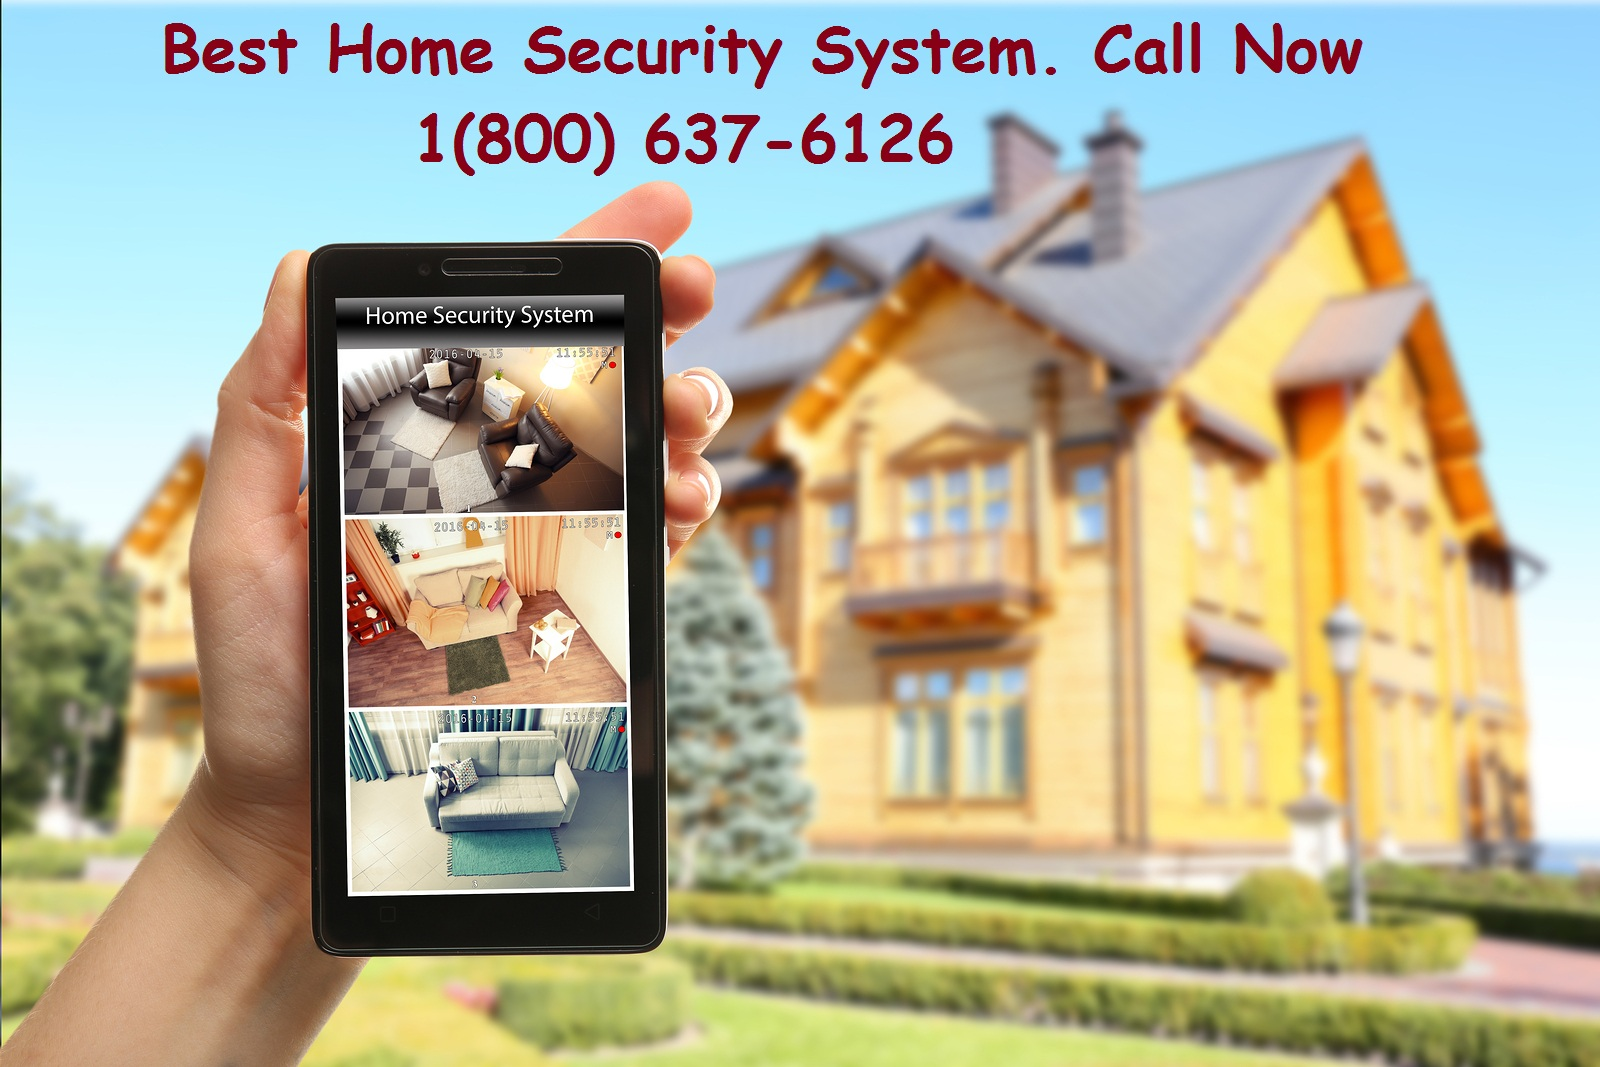 HOME SECURITY 1800-637-6126 GUARANTEED DISCOUNT OFFERS FOR NEW CUSTOMER